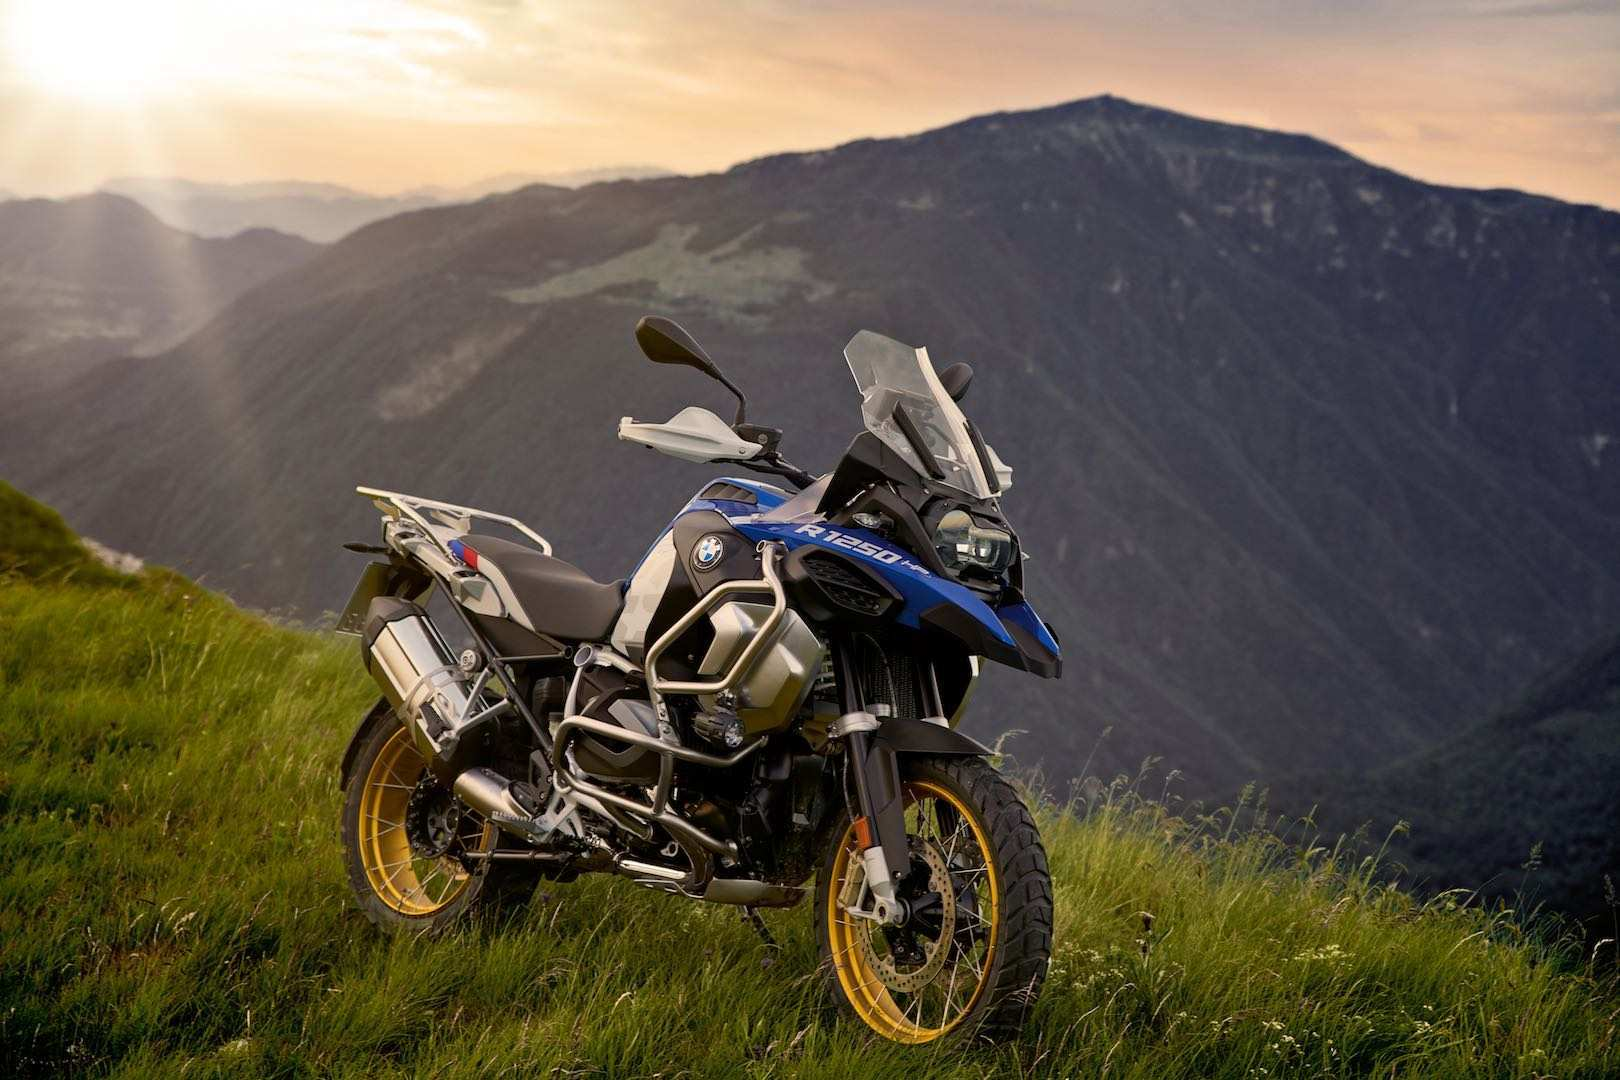 14 Gallery of 2019 Bmw Adventure Exterior and Interior for 2019 Bmw Adventure